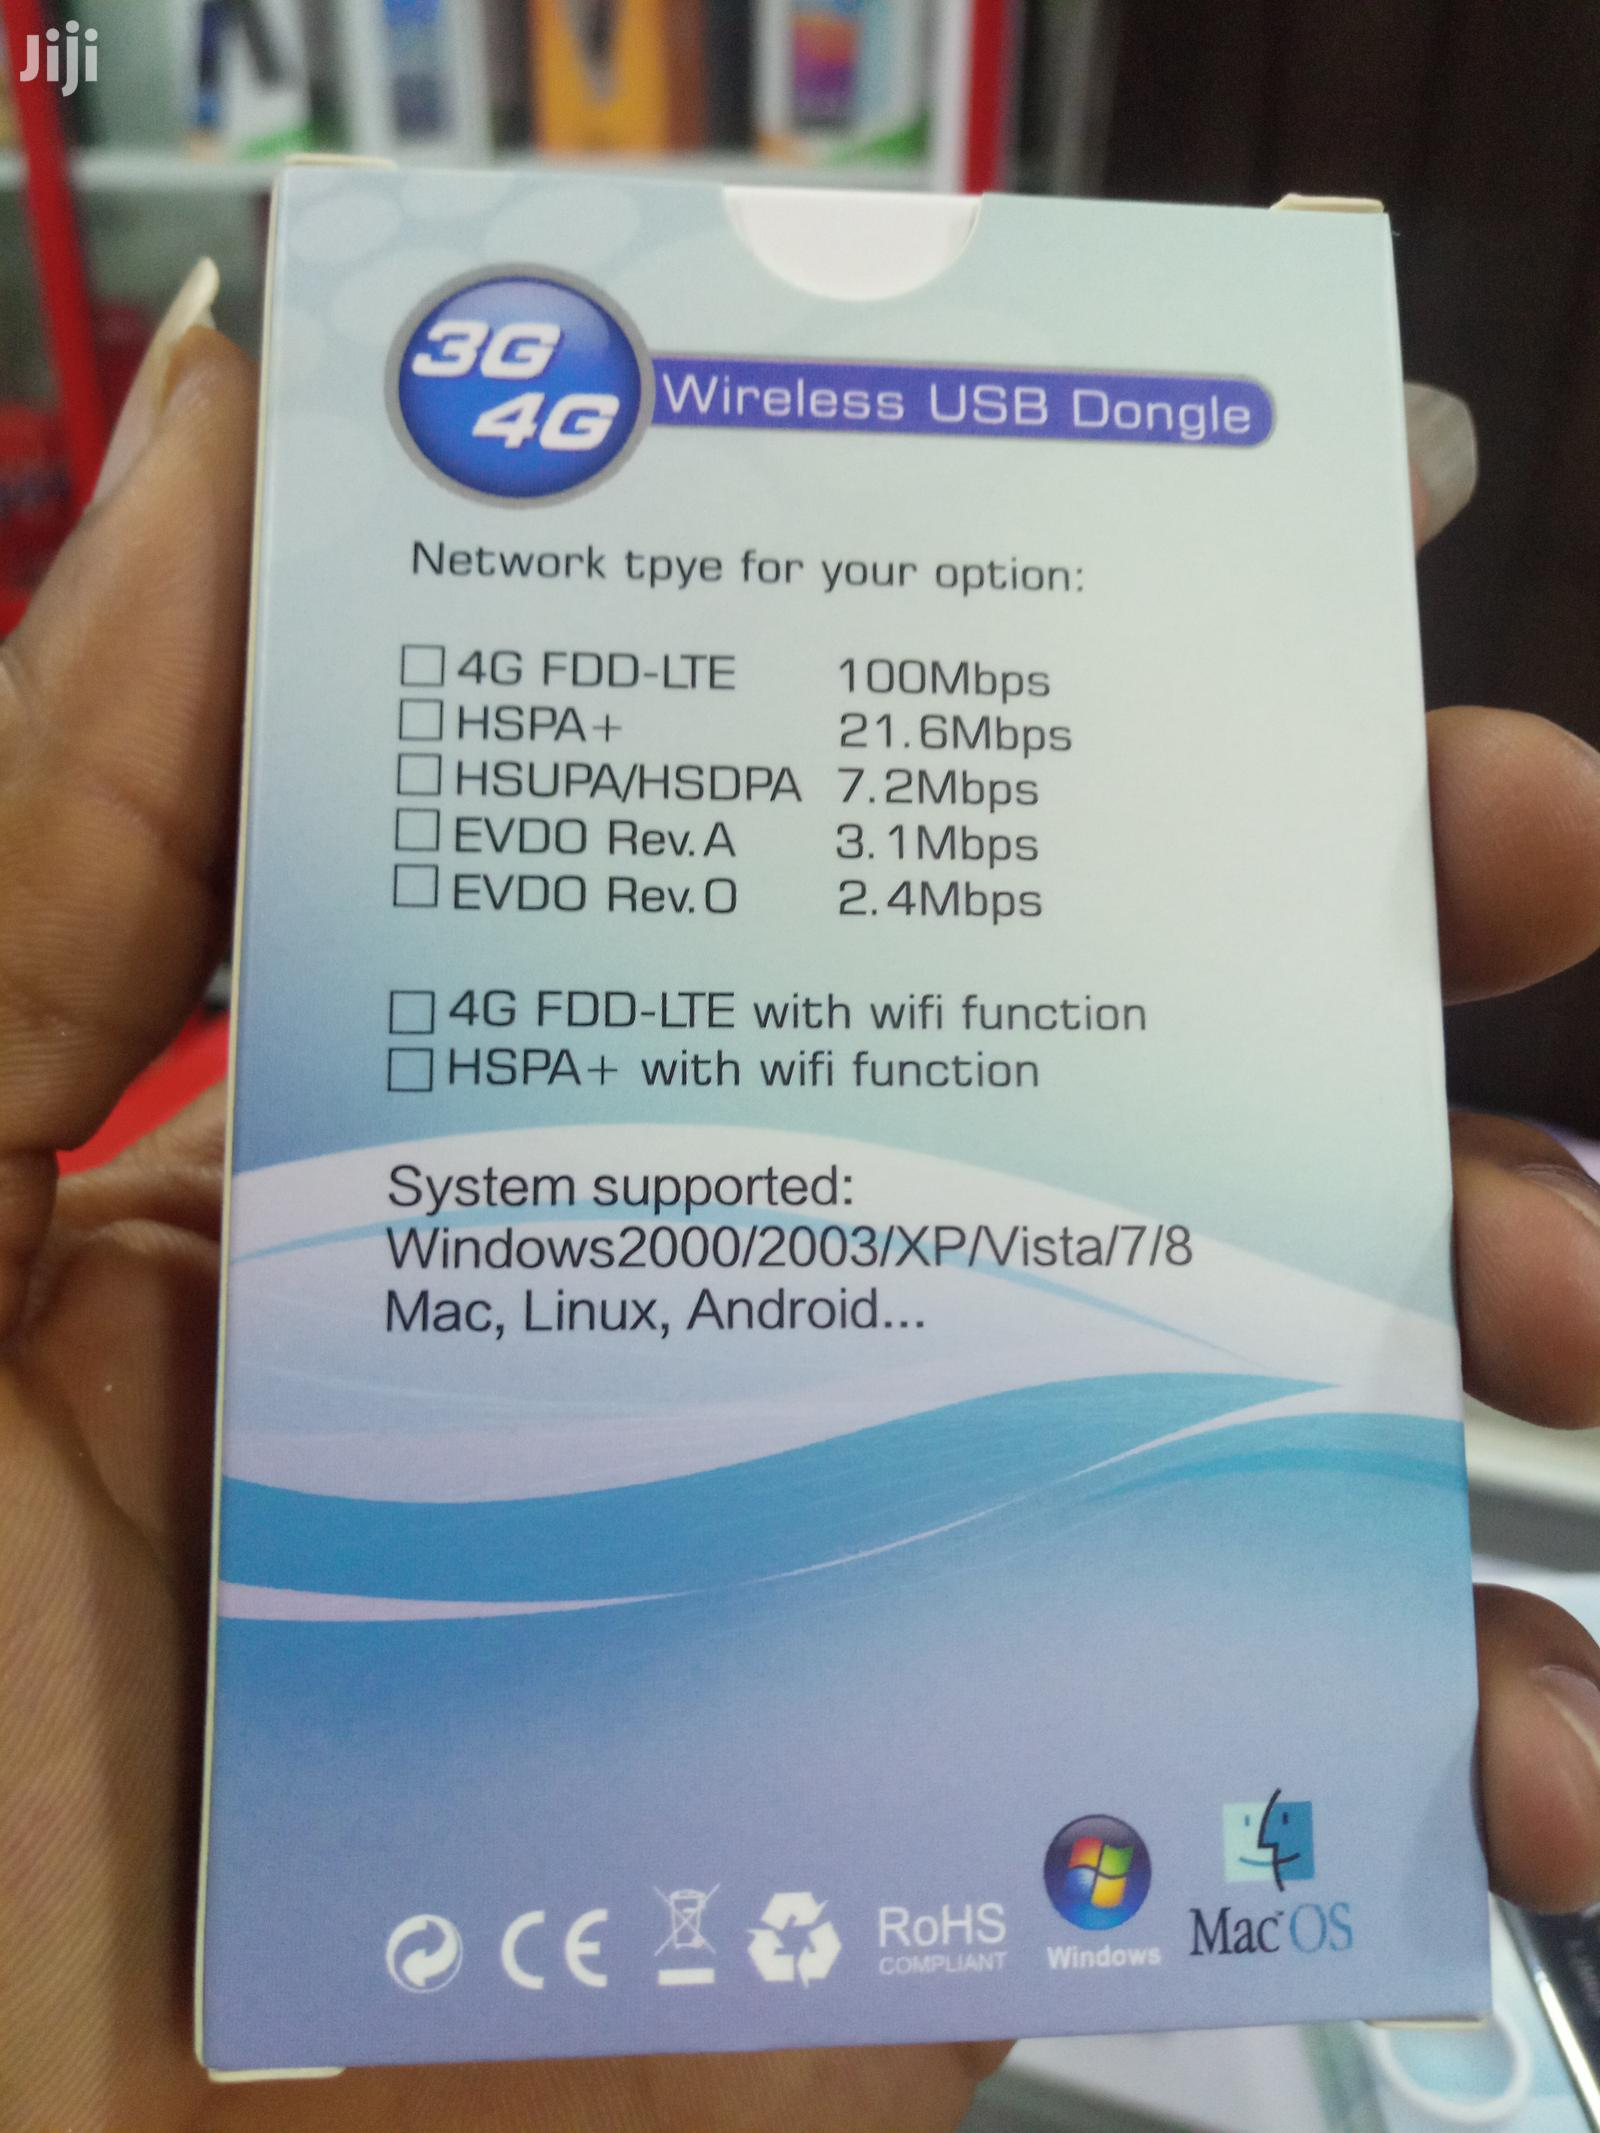 3g/4g Wireless USB Dongle(Modem)   Networking Products for sale in Ikeja, Lagos State, Nigeria